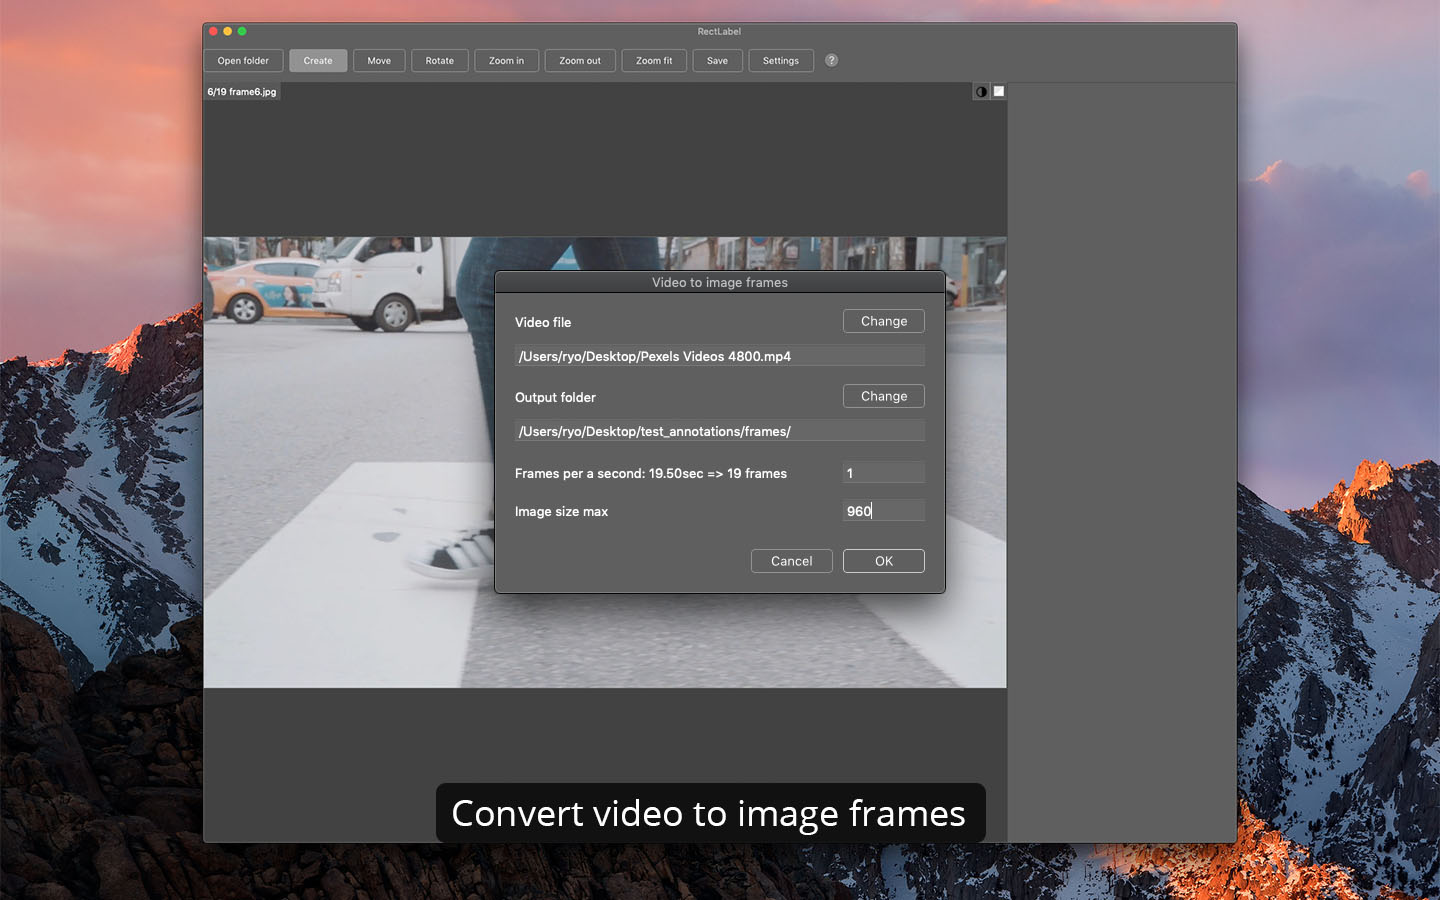 Convert video to image frames